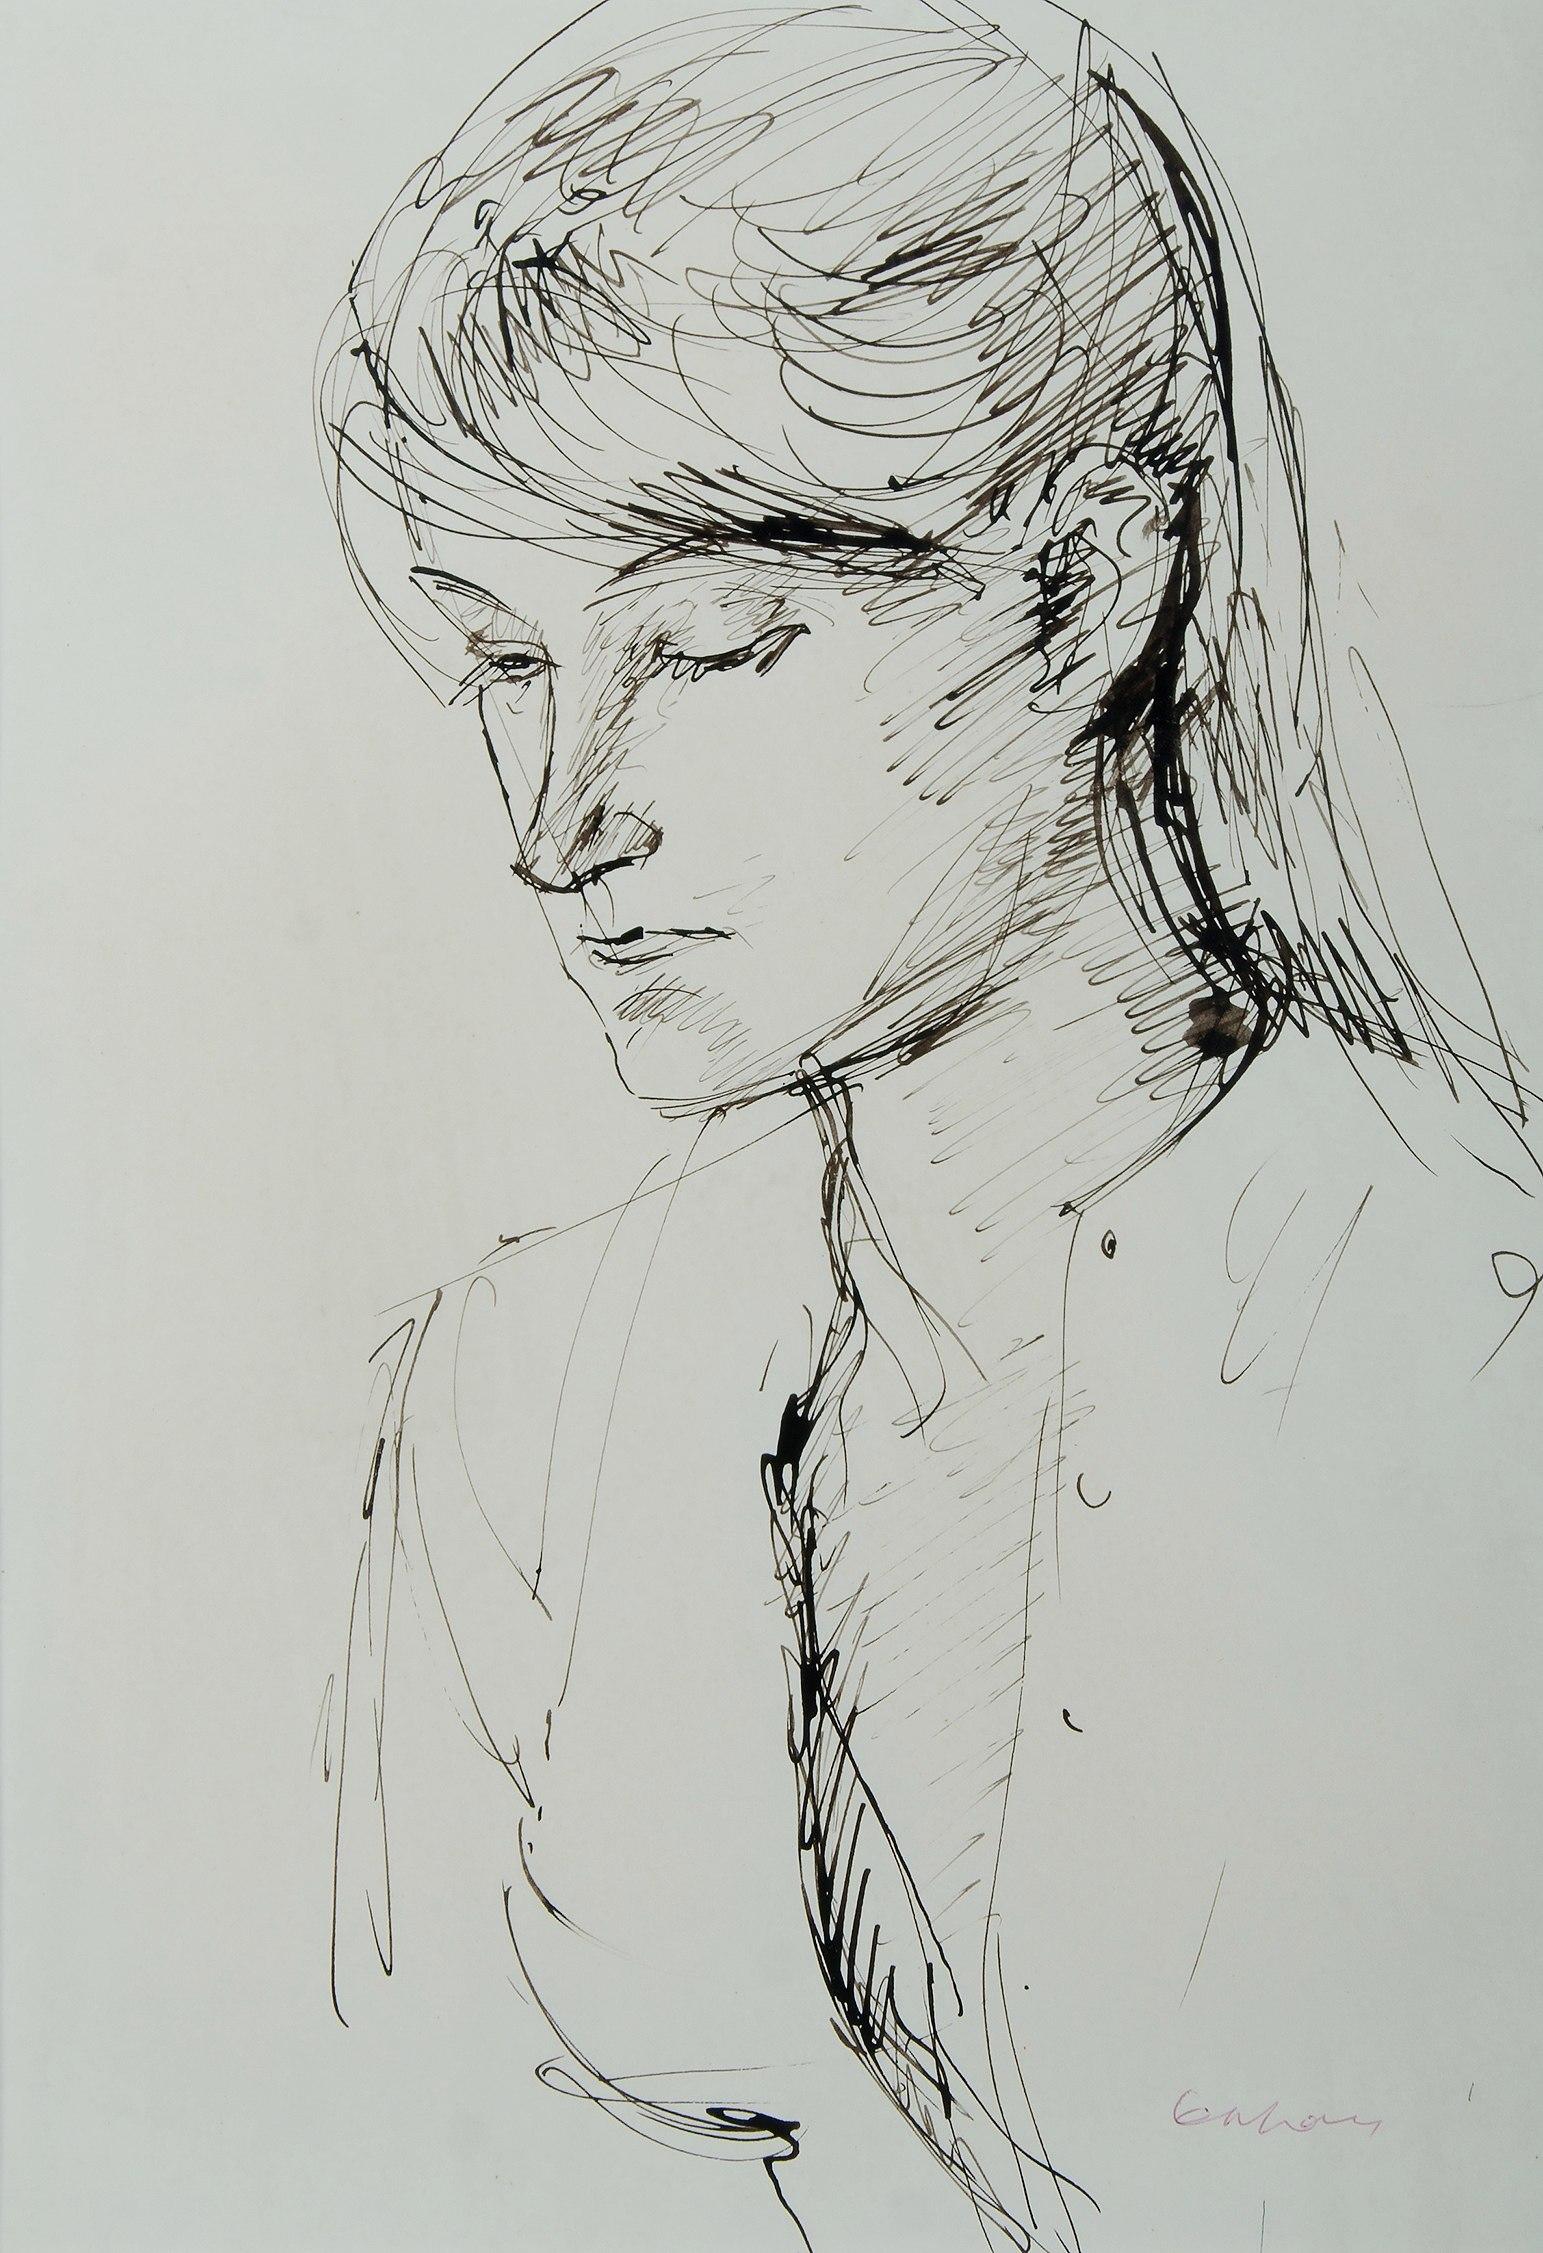 'KAHAN, Louis (1905-2002): Head of a Girl, c1958 Pen & Ink'